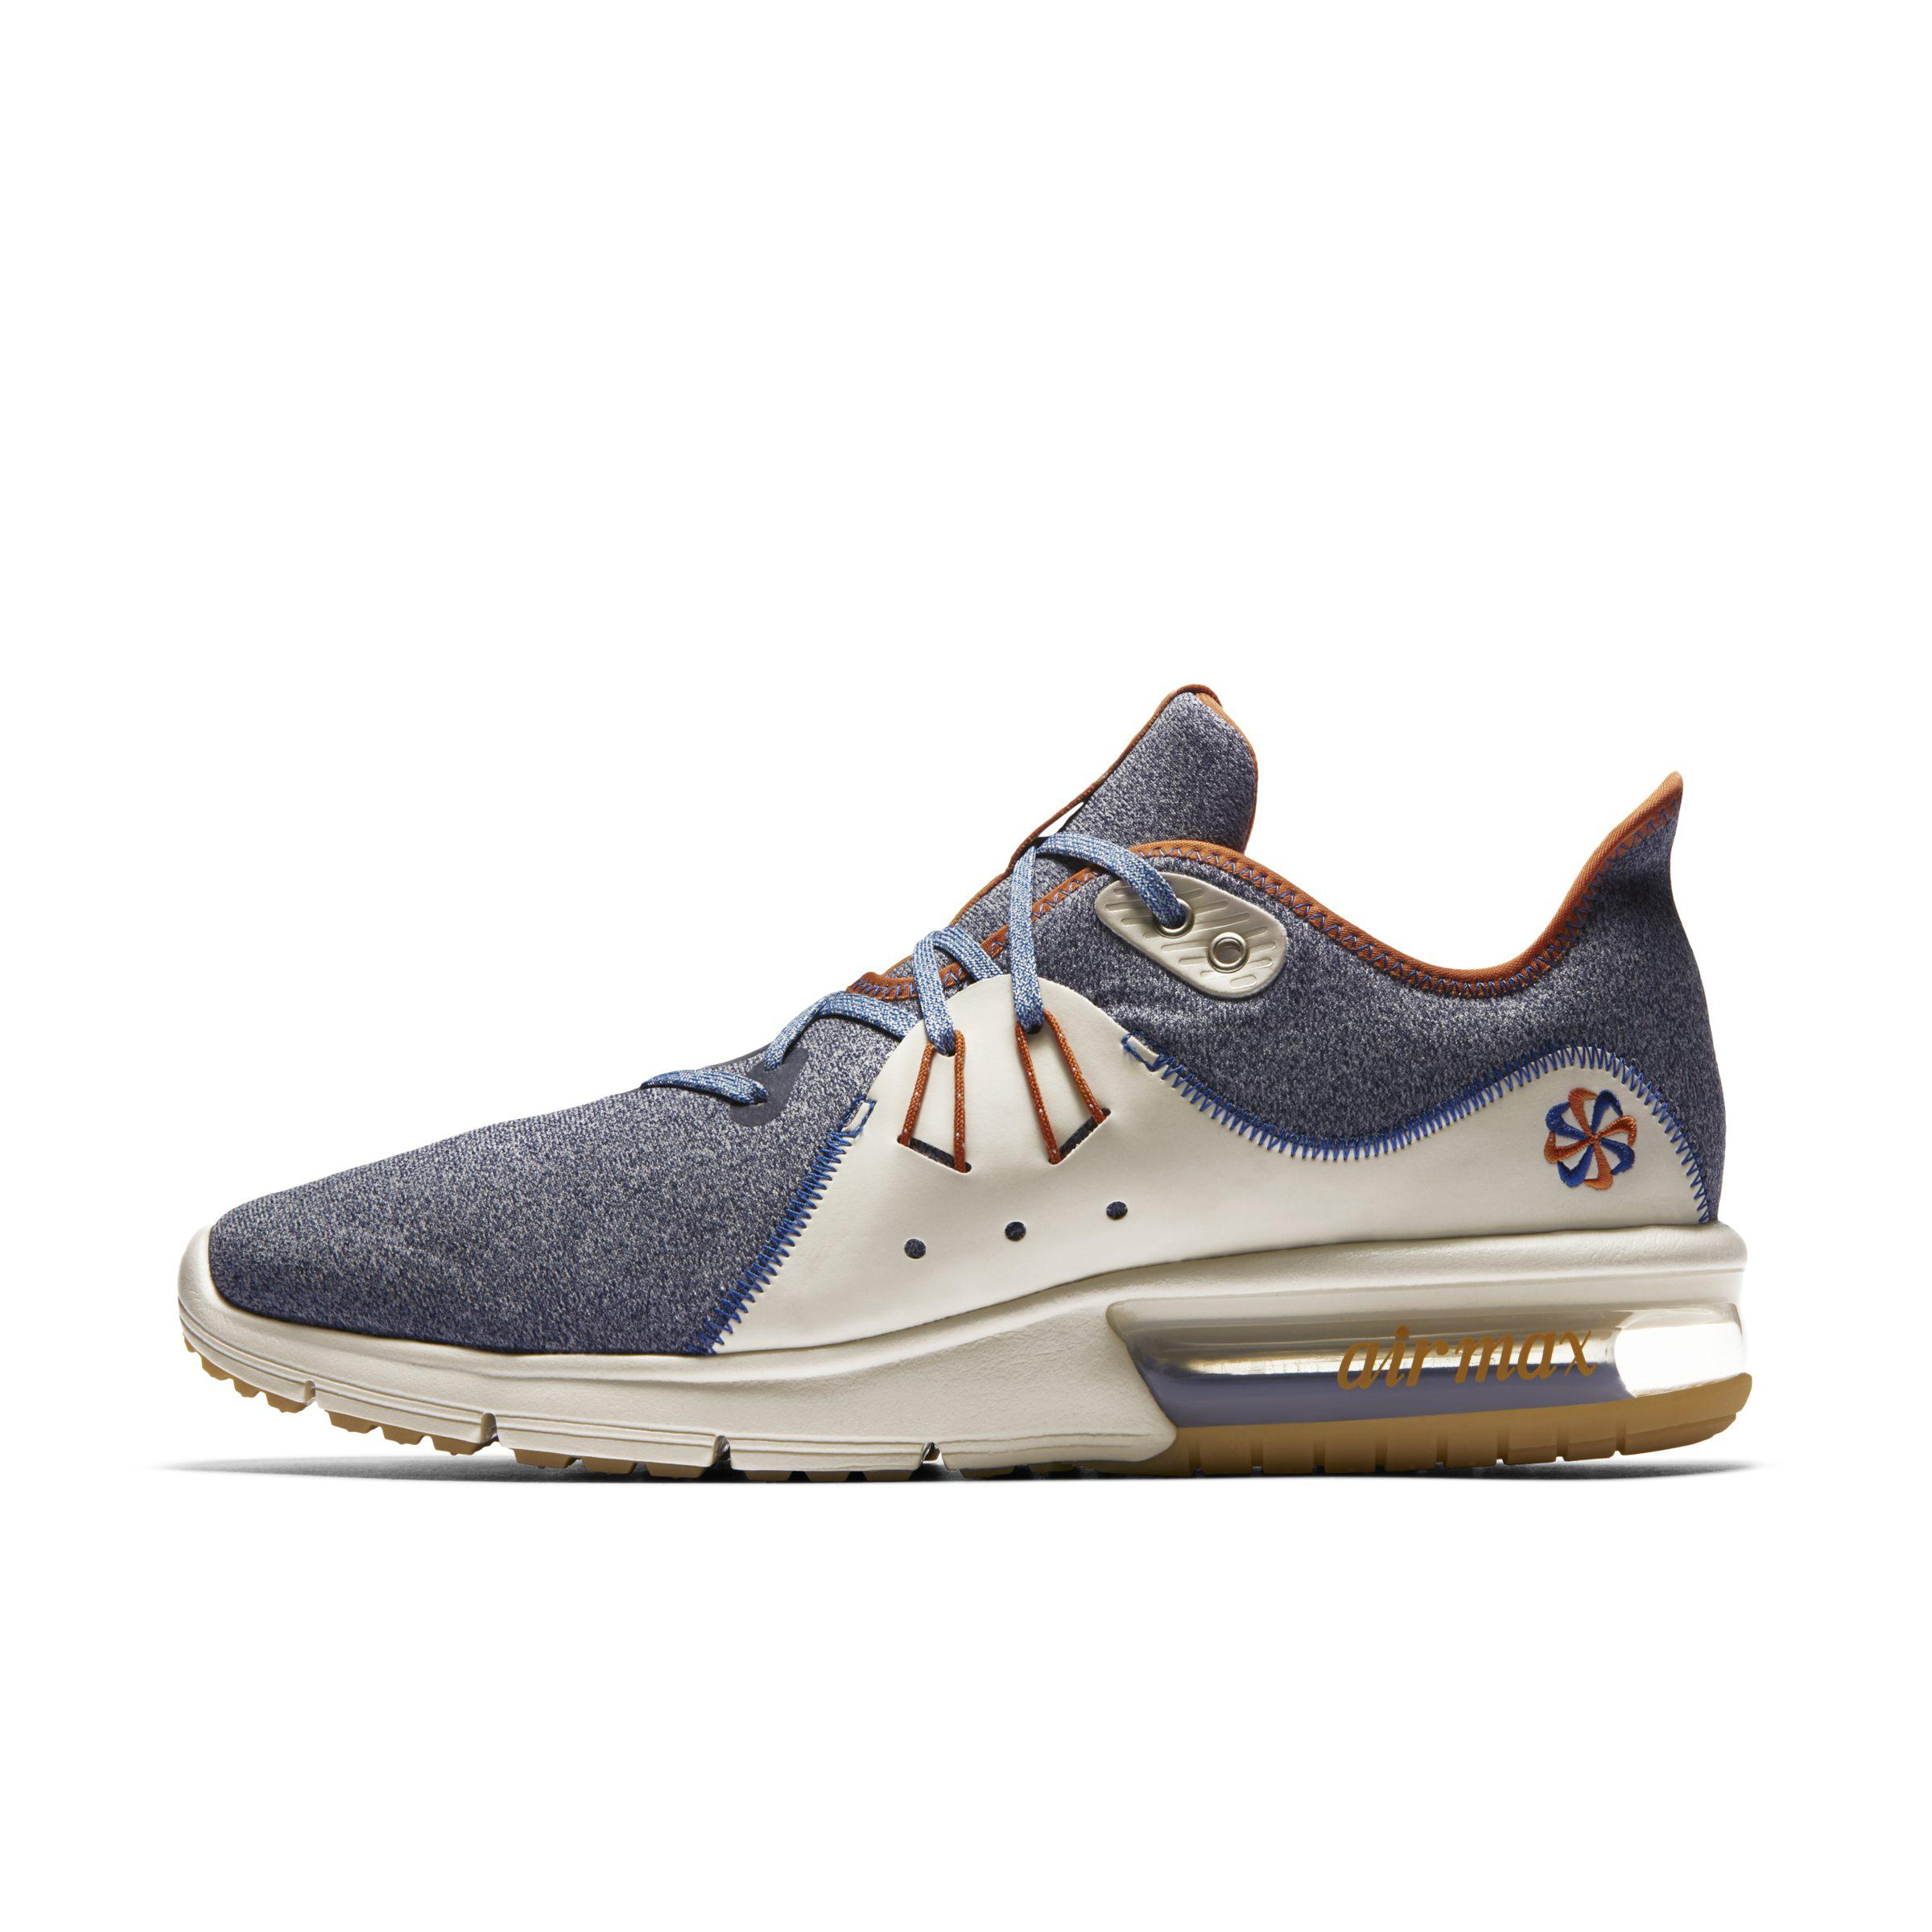 buying new 50% off on feet images of Air Max Sequent 3 Premium Vst Running Shoe